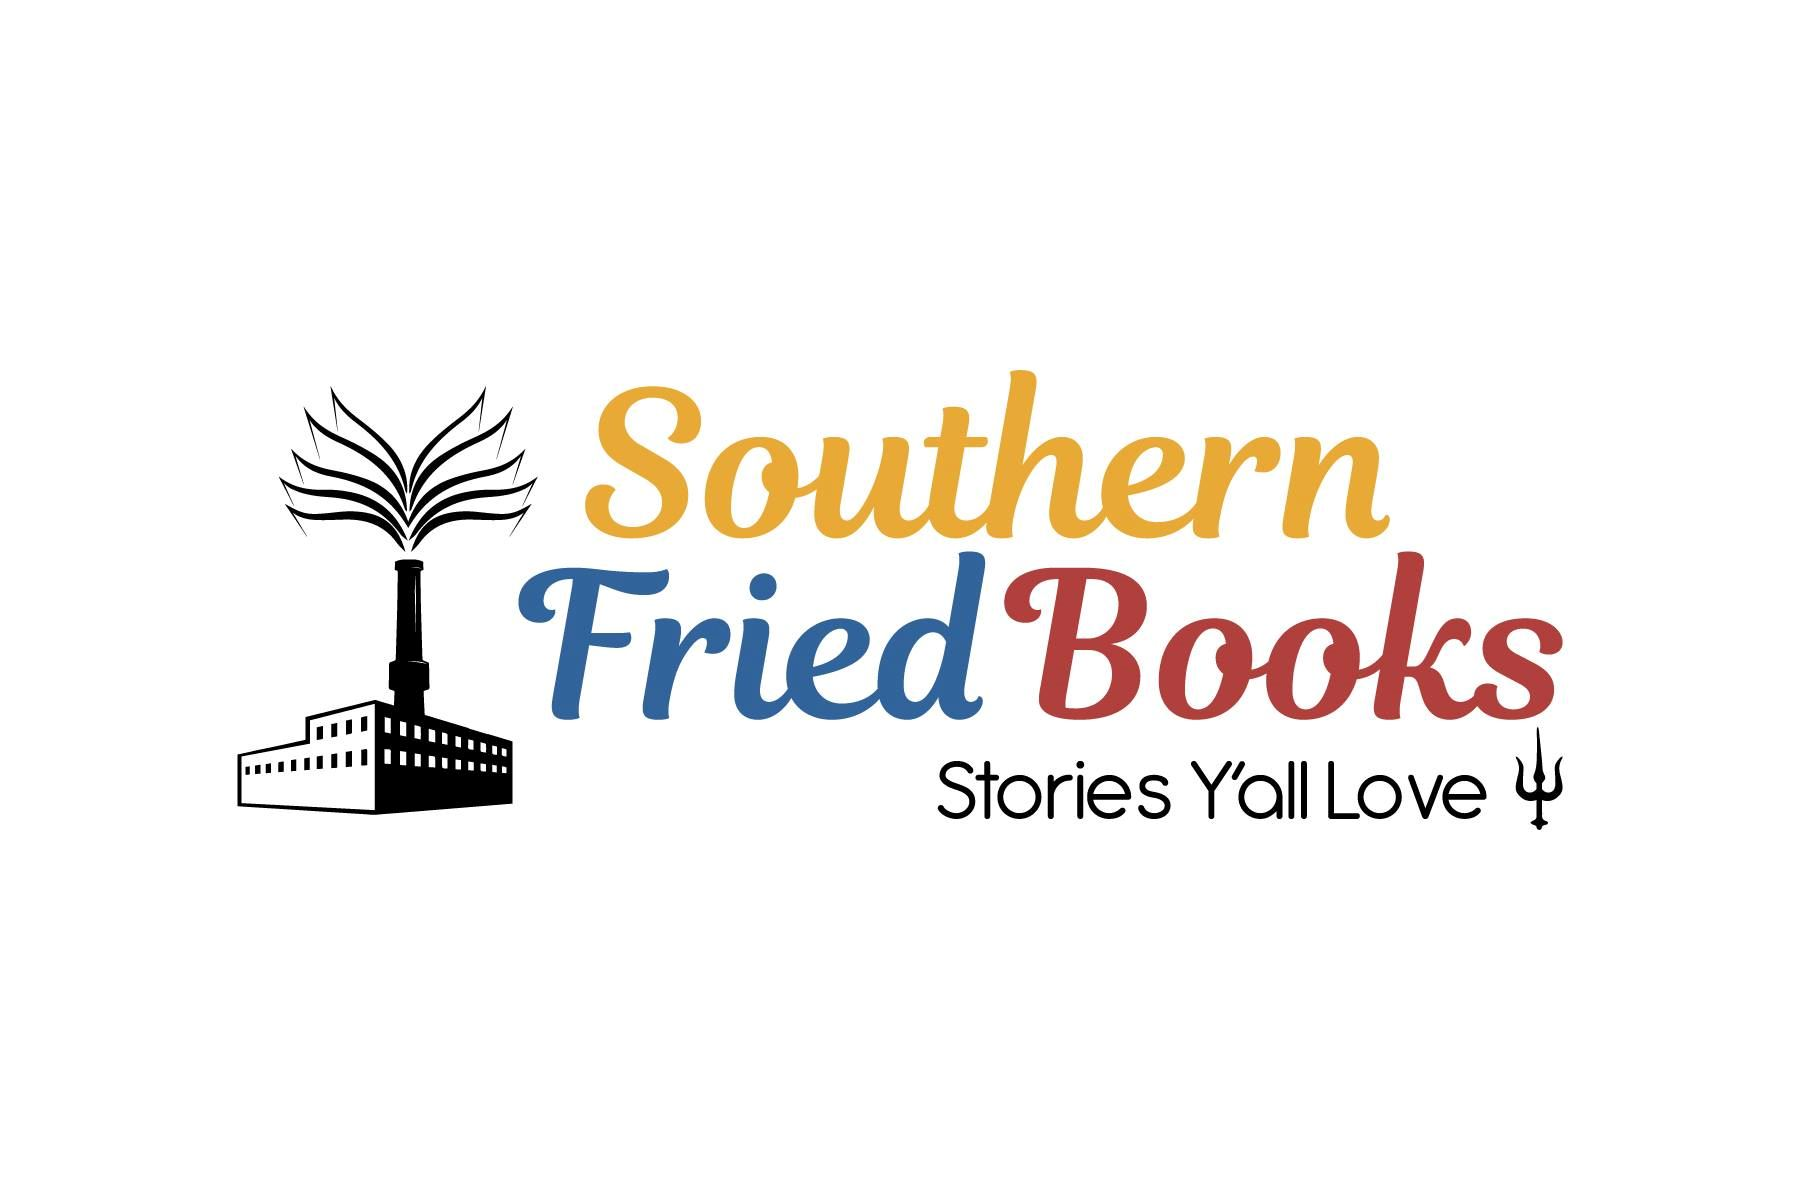 Southern Fried Books